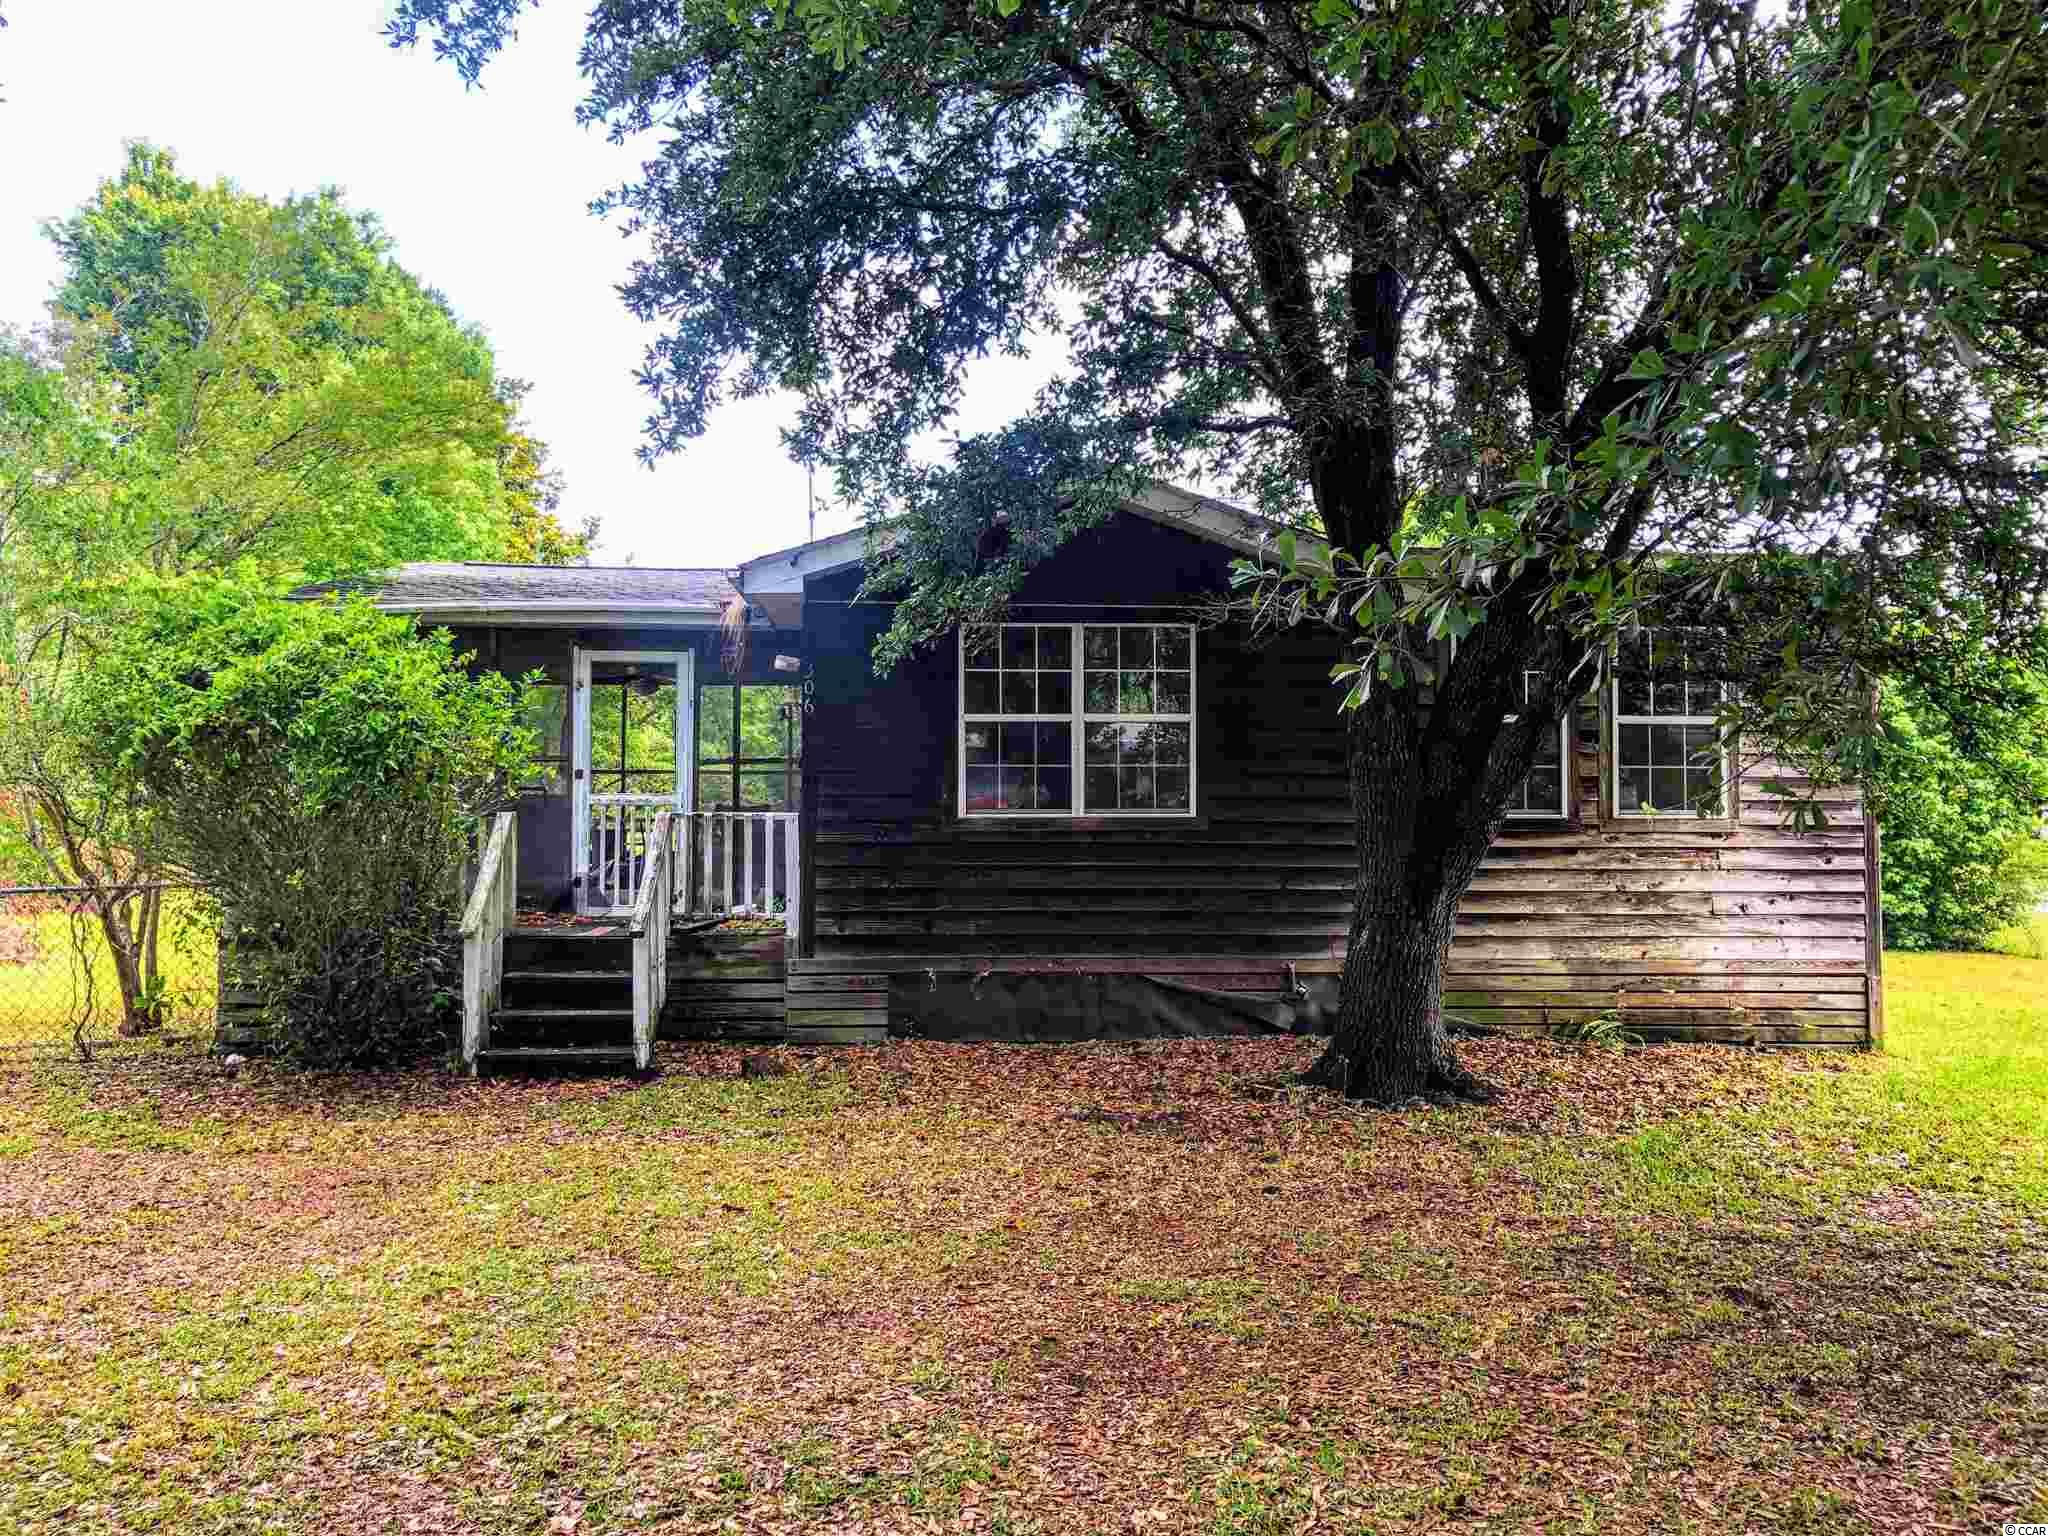 If you are looking for a fixer upper or want to build your dream home in the highly desirable area of Pawleys Island, then look no further! Just minutes from the beach, this 2 bed, 2 bath manufactured home is ready to be brought back to life. Sitting on 0.34 acres, the possibilities of what can be achieved are endless. Home is being sold as-is and features a fenced in yard, large car port and best of all, NO HOA. The location is perfect, with many fantastic restaurants, shopping, grocery stores and much much more. All measurements and square footage are approximate and not guaranteed. Buyer responsible for verification. Schedule your showing today!